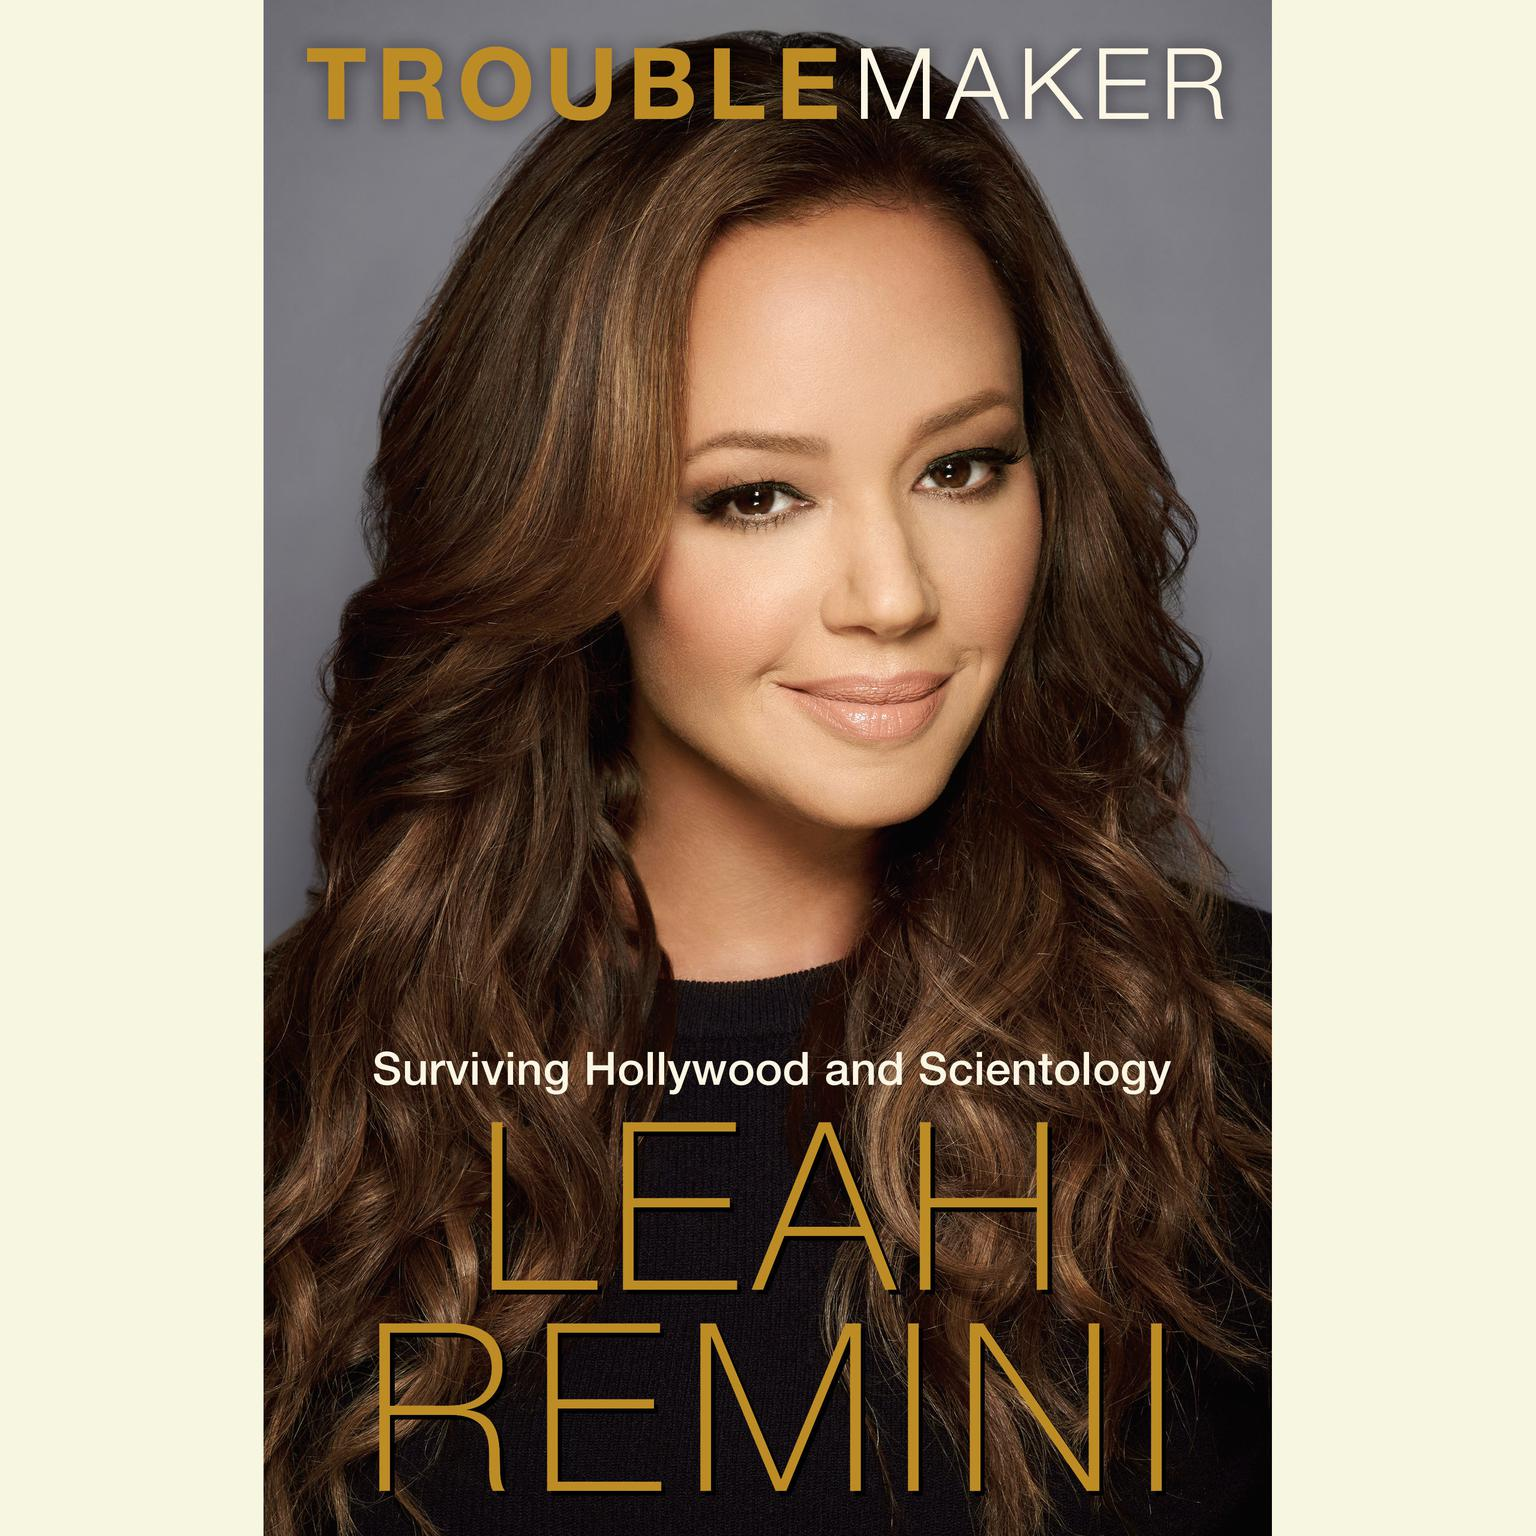 Printable Troublemaker: Surviving Hollywood and Scientology Audiobook Cover Art